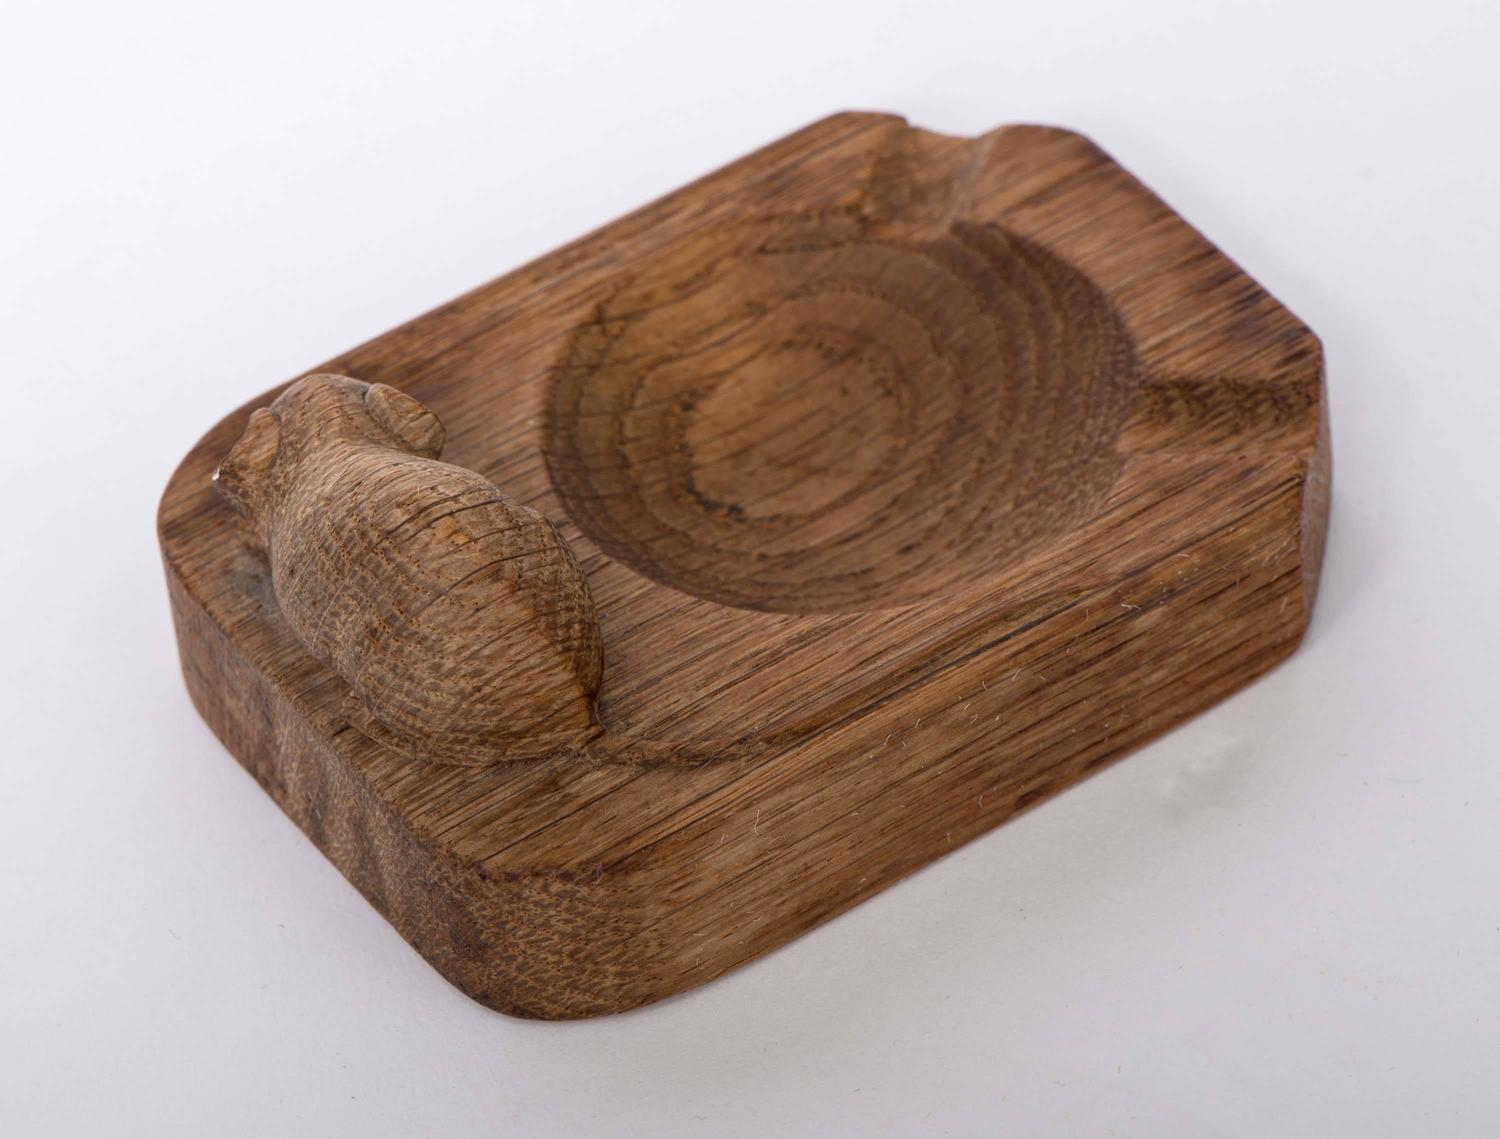 Robert mouseman thompson oak carved ashtray at stdibs